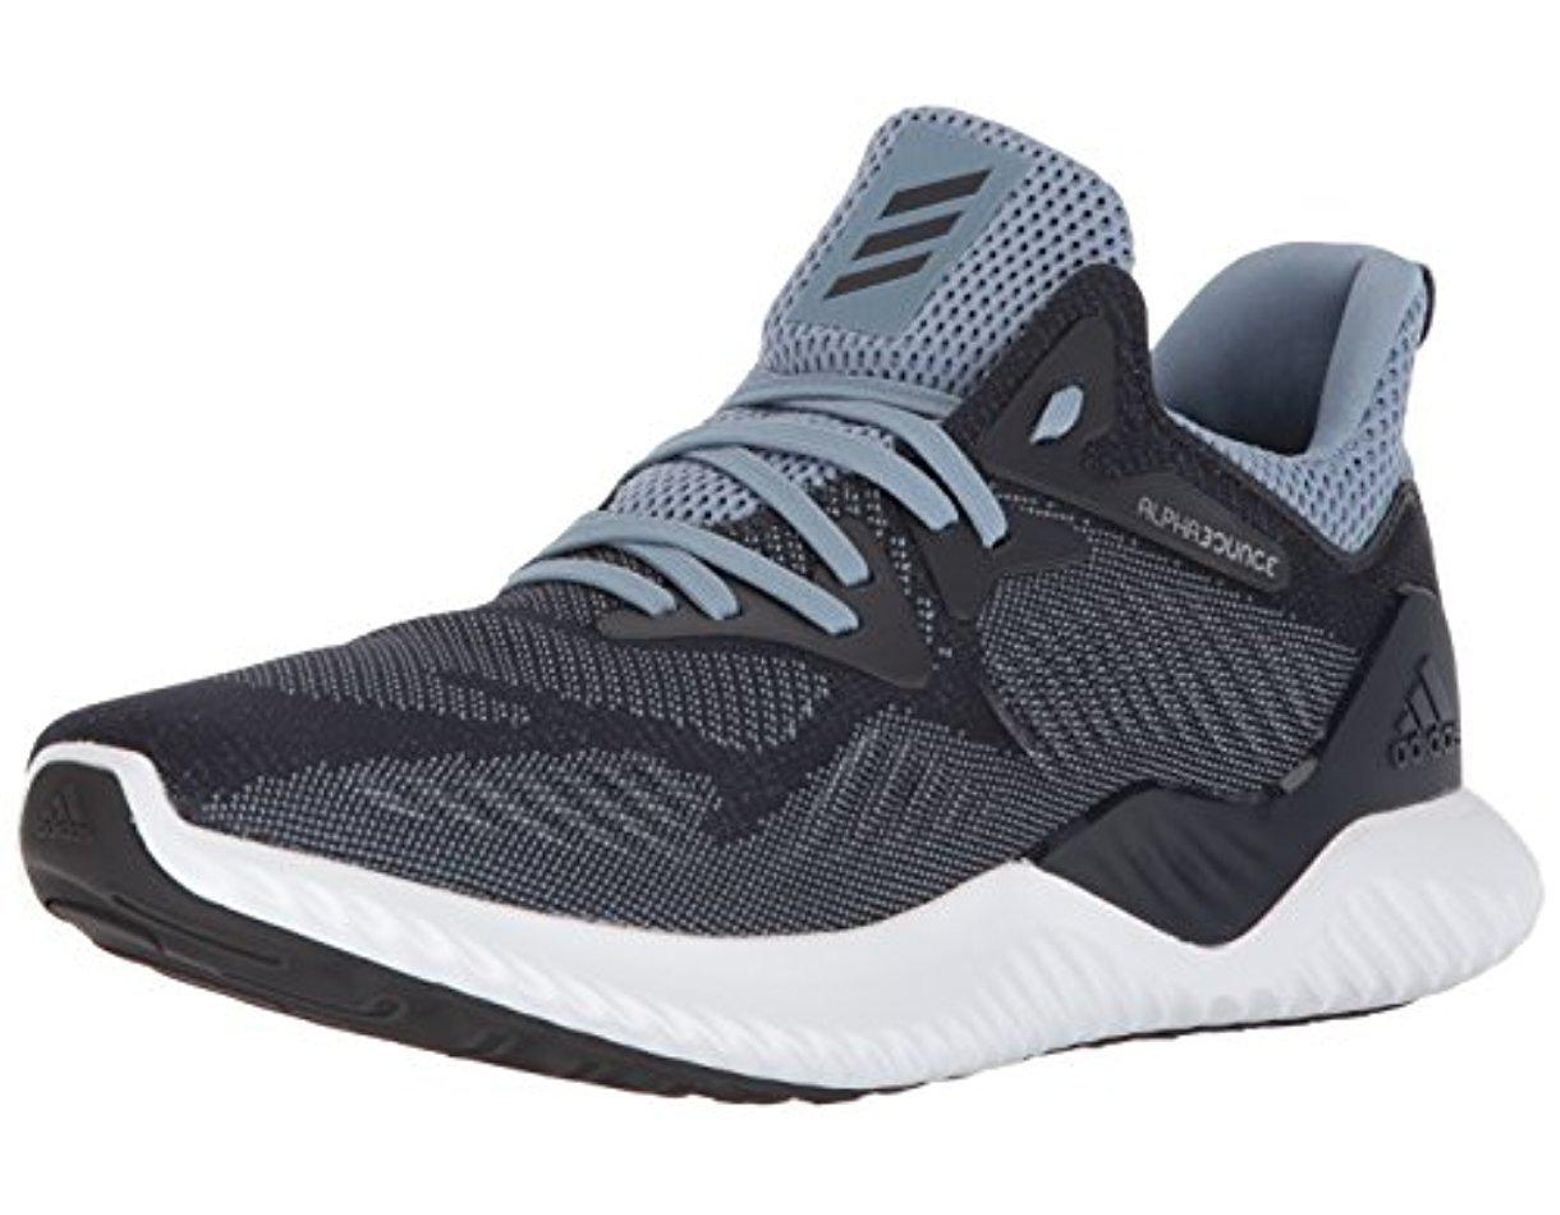 4fdefa13f Lyst - adidas Alphabounce Beyond M Running Shoe in Gray for Men